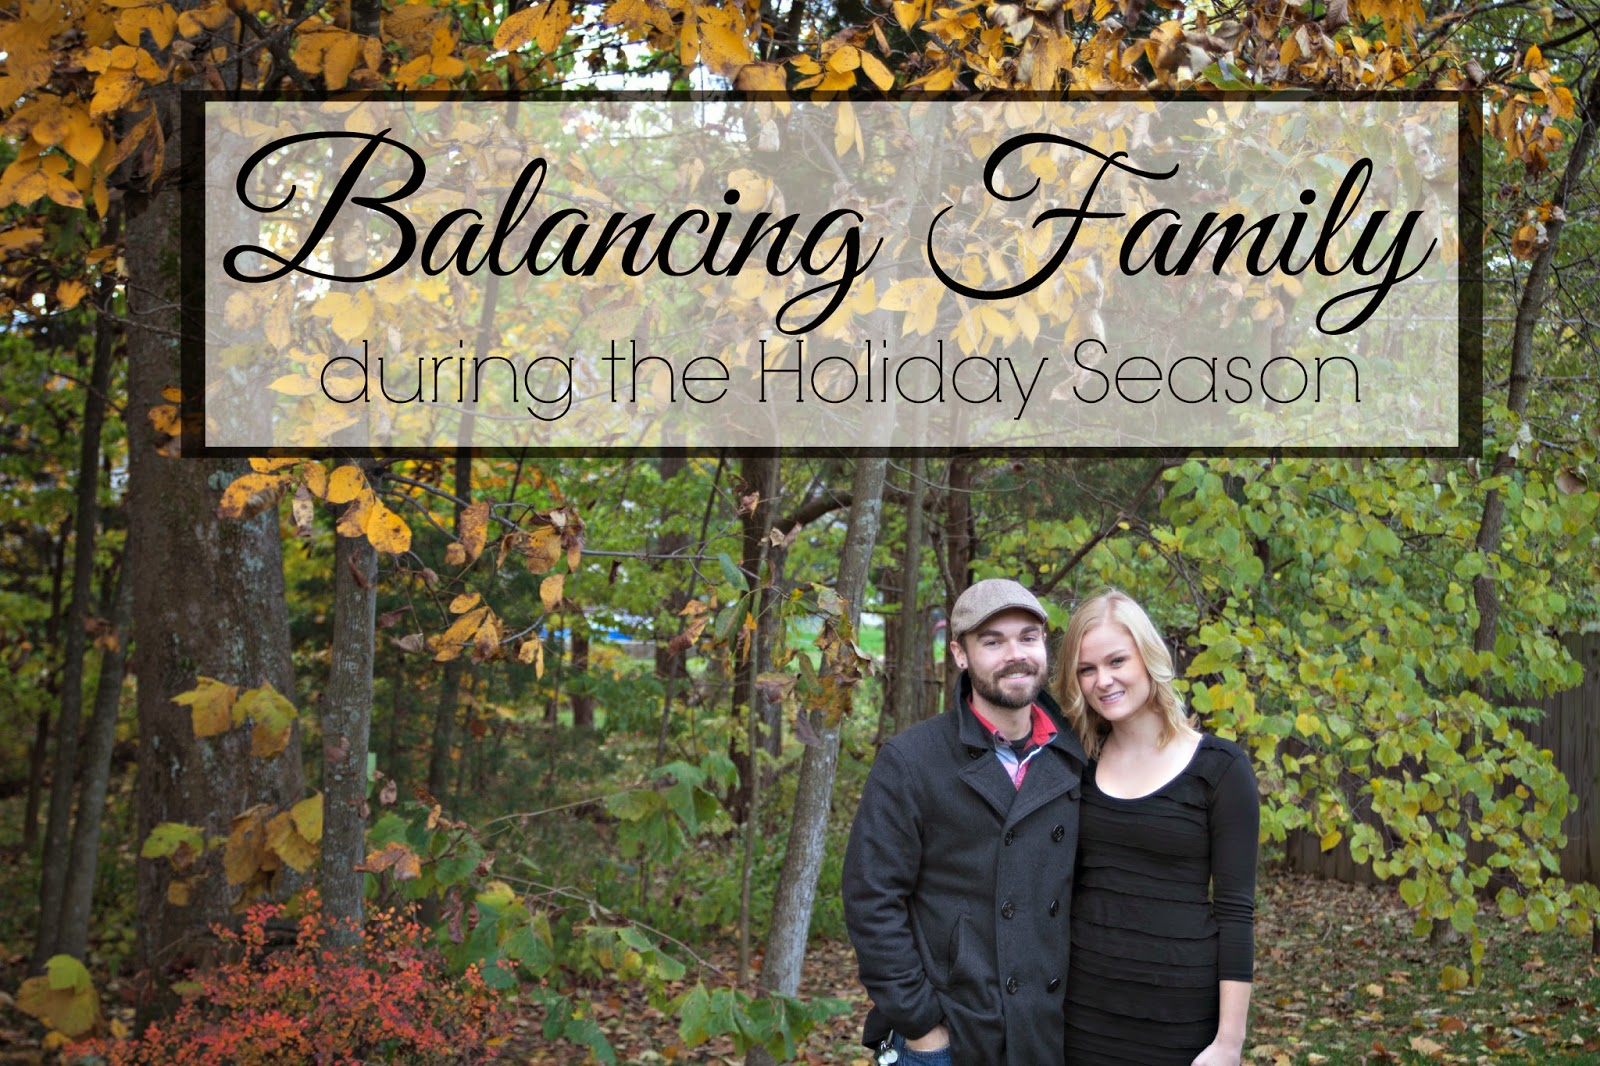 Balancing family during the holiday season as a married couple